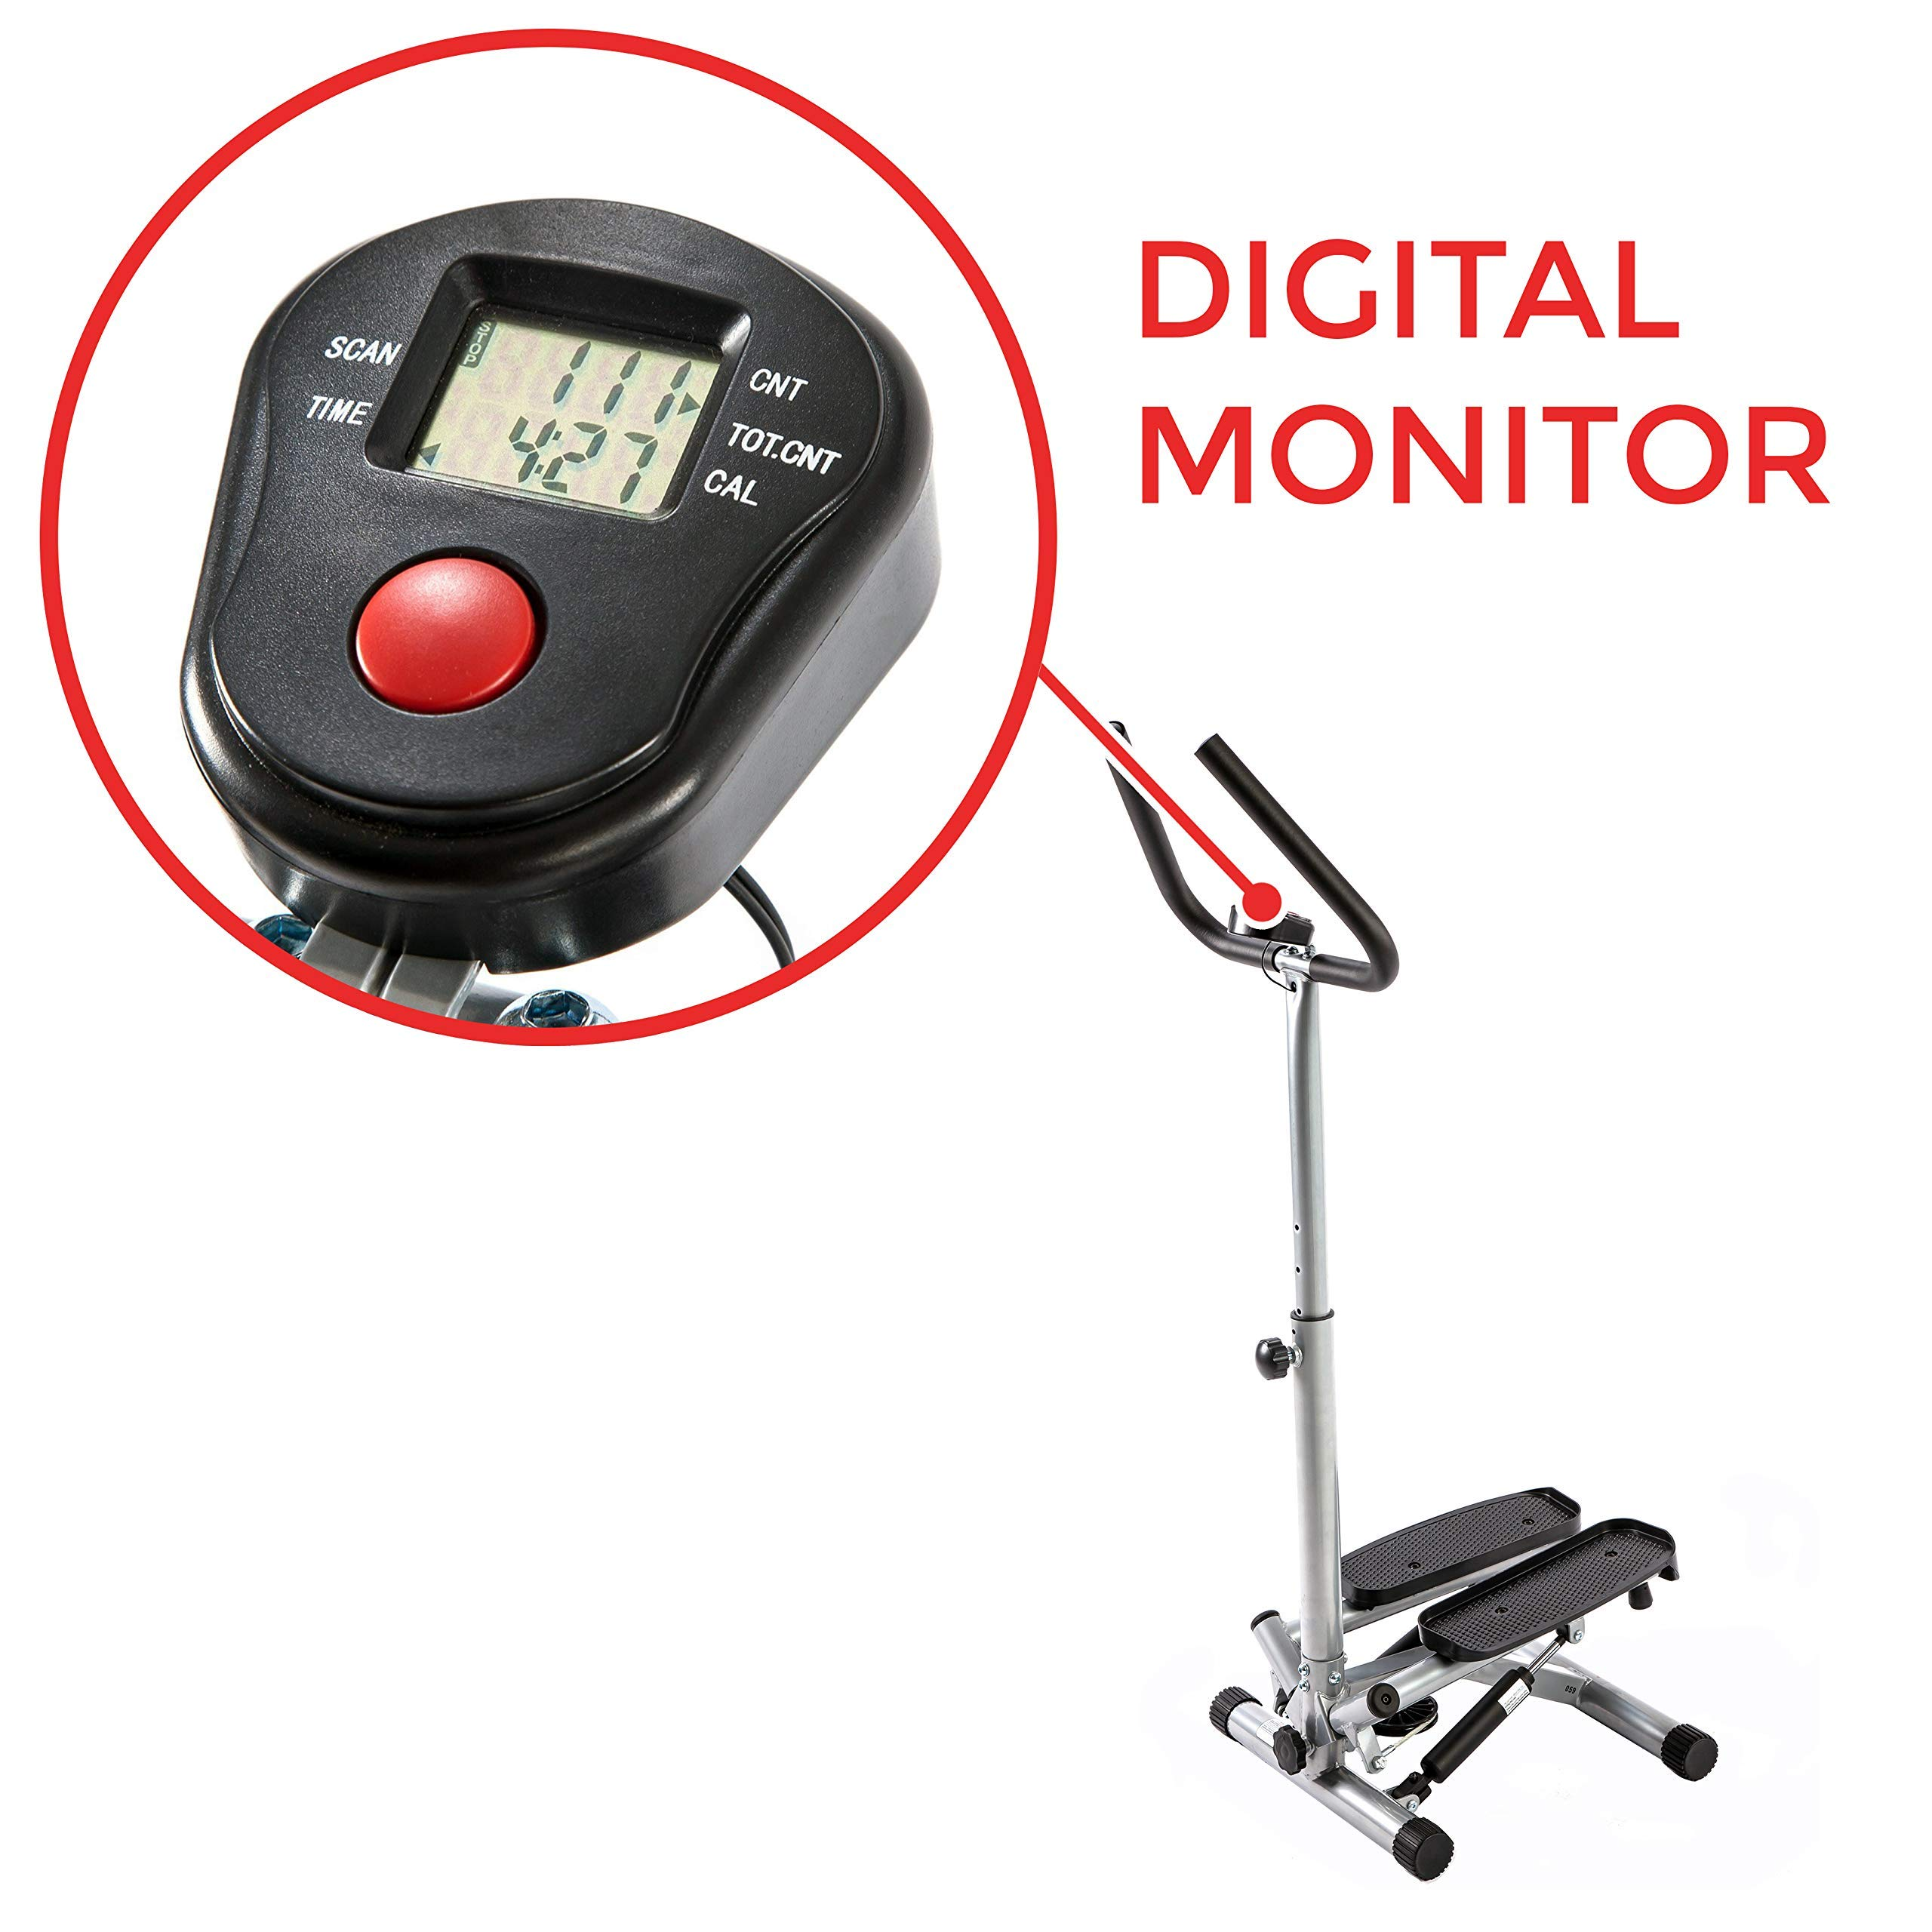 Sunny Health & Fitness NO. 059 Twist Stepper Step Machine w/Handle Bar and LCD Monitor (Renewed) by Sunny Health & Fitness (Image #4)